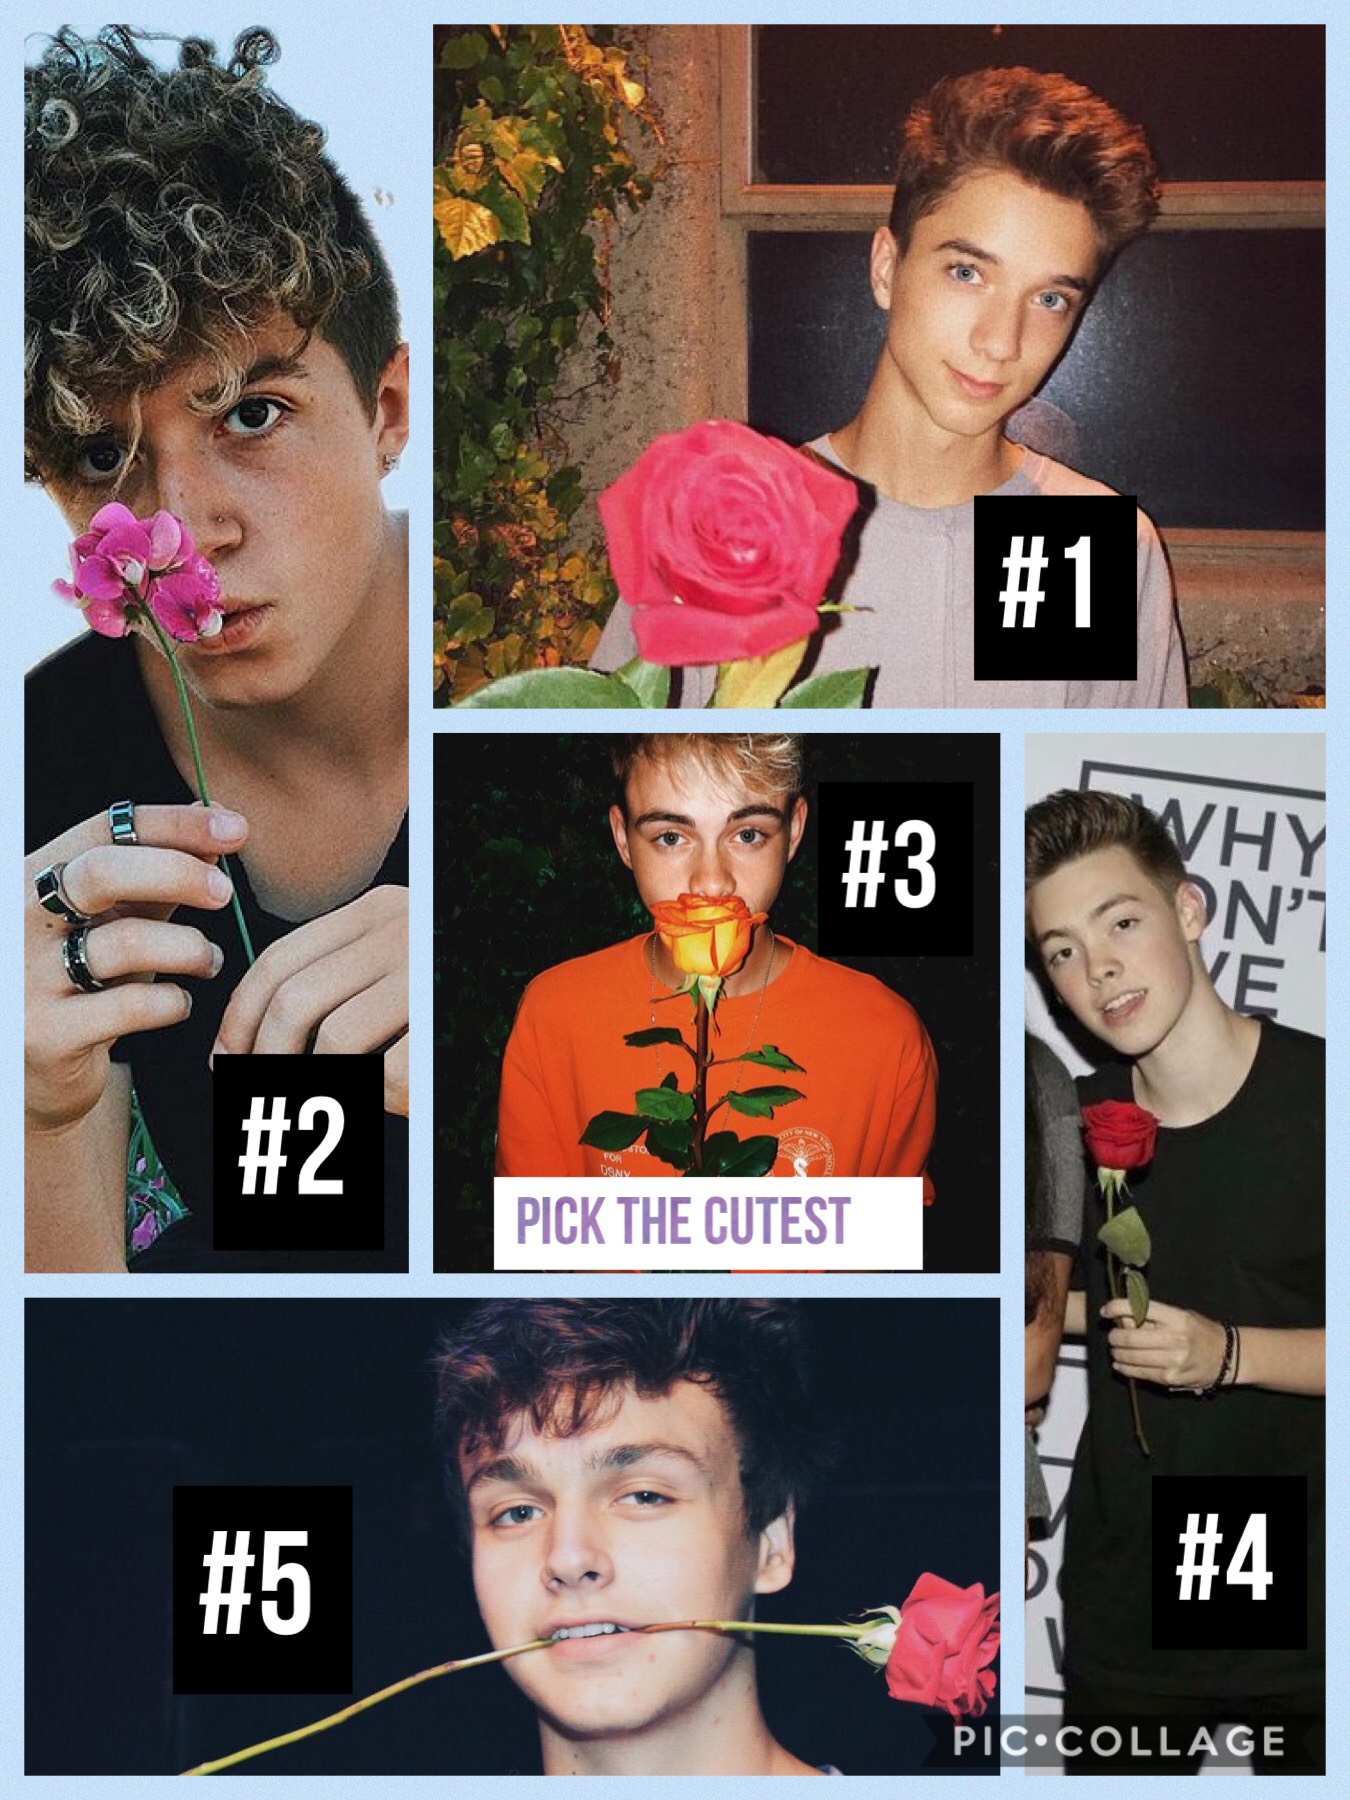 This is Why Don't We: like if you live in the USA